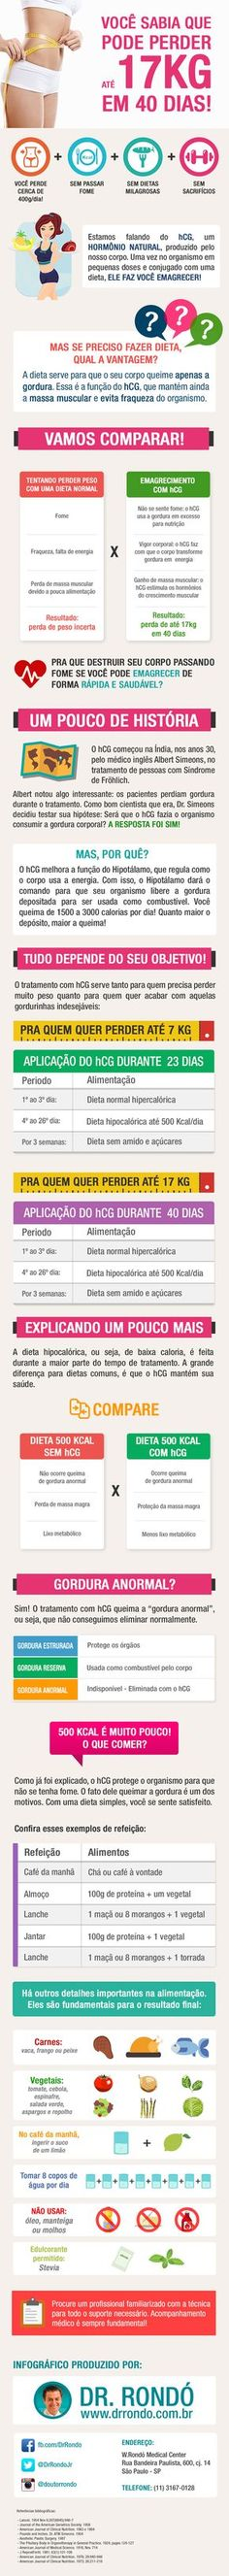 infografico hc g dr rondo Health And Beauty, Health And Wellness, Health Tips, Health Fitness, Dietas Detox, Menu Dieta, Fitness Tips, Healthy Lifestyle, Lose Weight